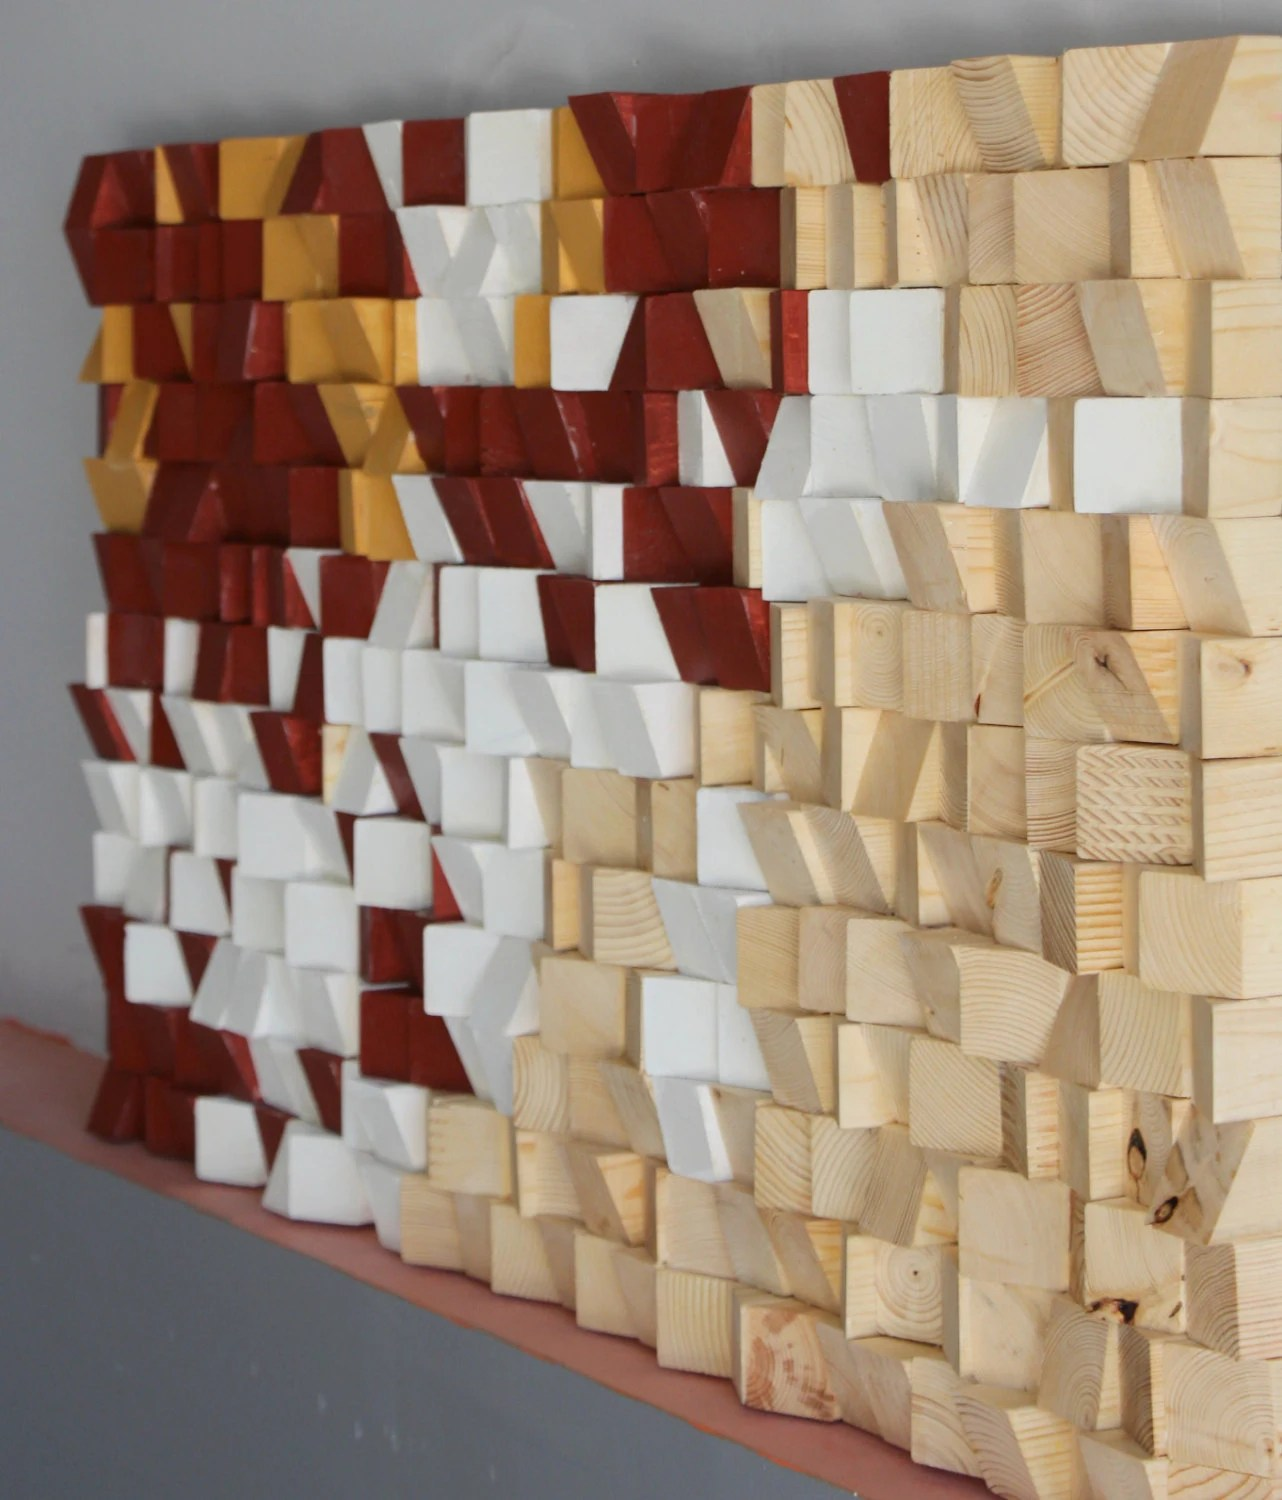 Abstract Wood Wall Art Geometric Reclaimed Wood Wall Art Rustic Wood Mosaic Wood Wall Art Rustic Wood Wall Art Wood Wall Sculpture Abstract Wood Art